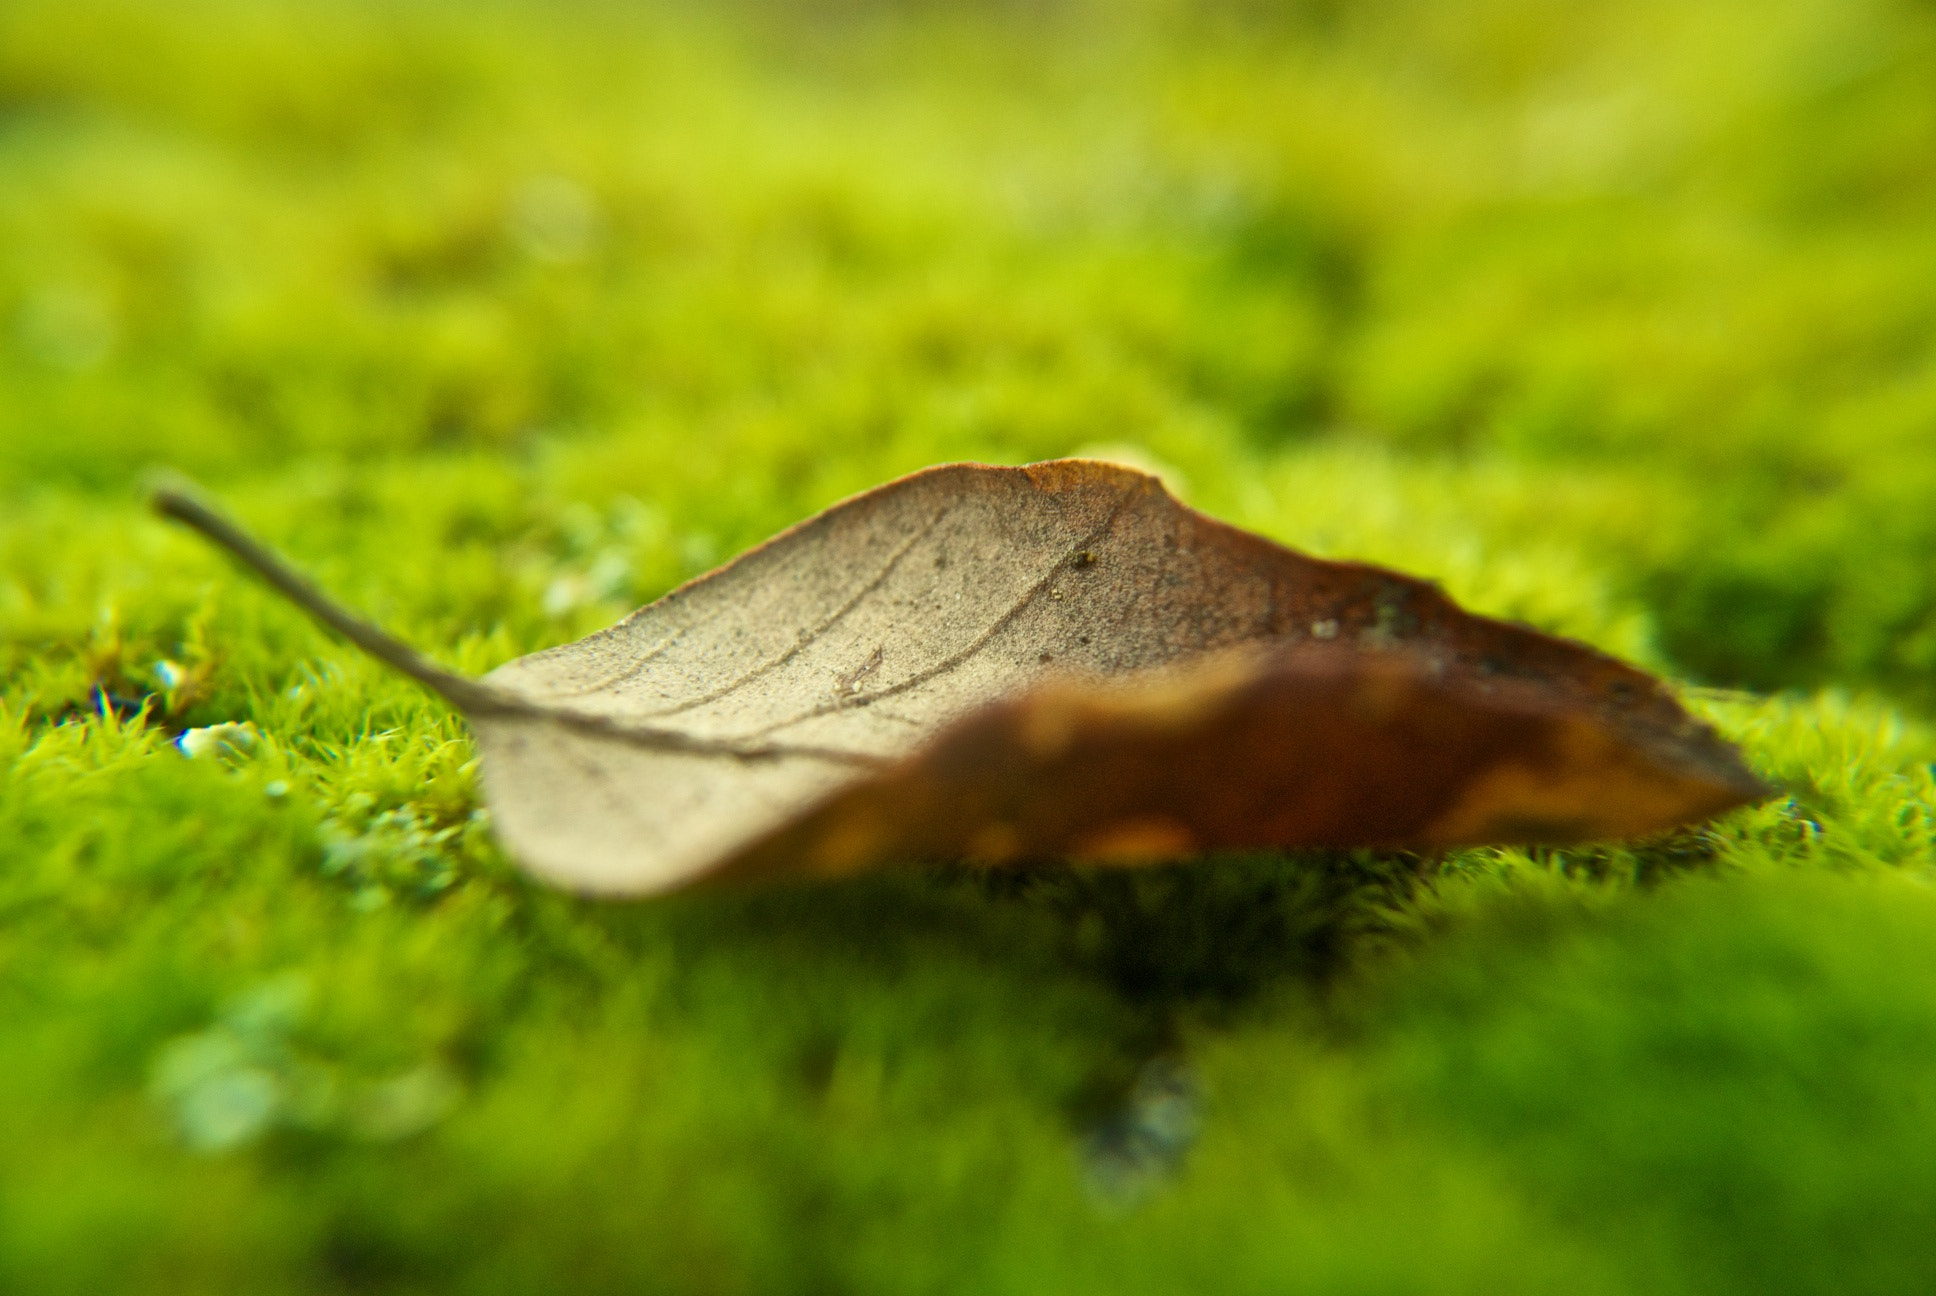 Photograph leaf by Pedro Cid on 500px